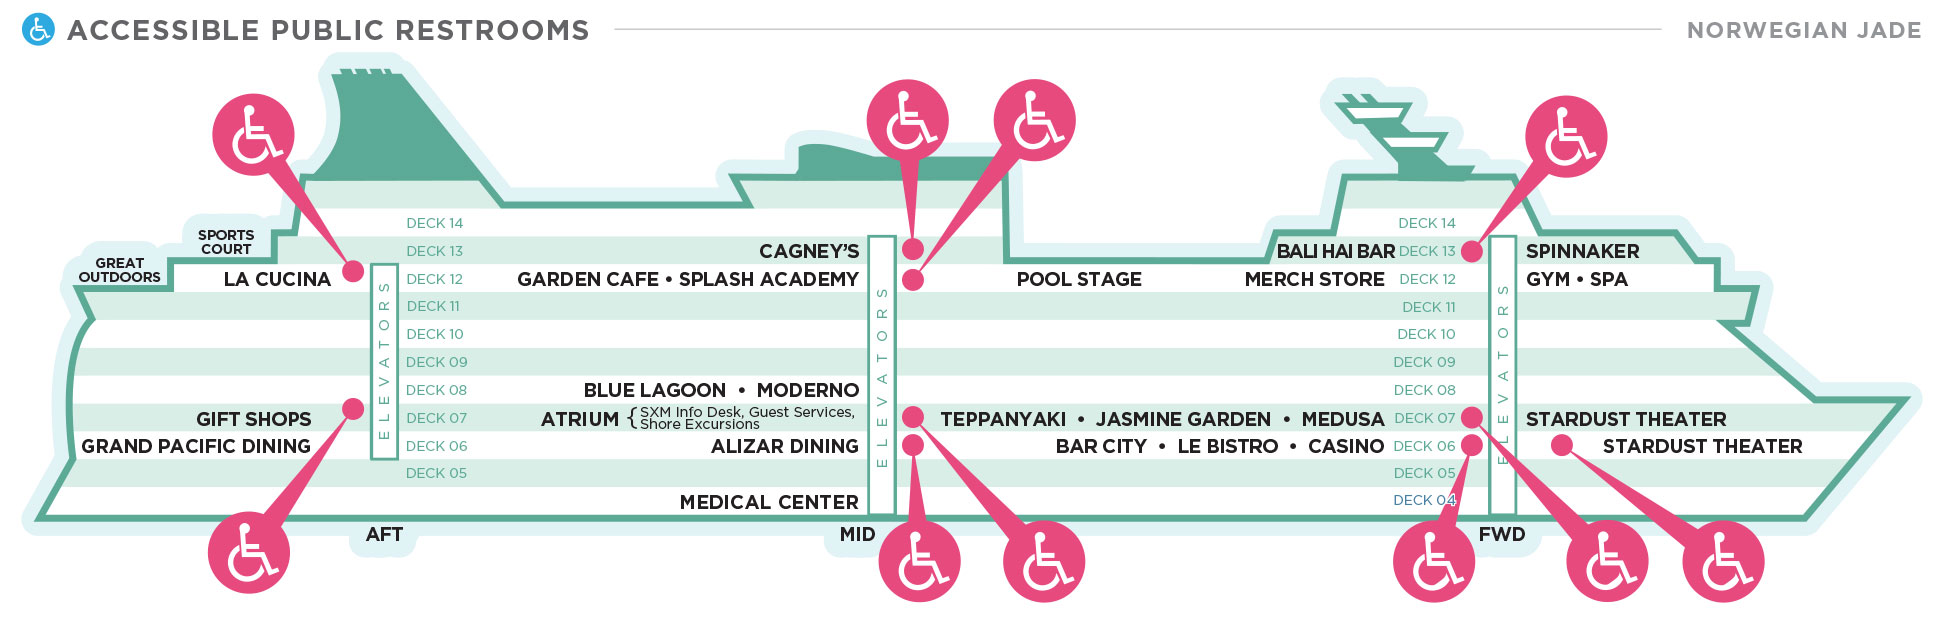 hight resolution of the following public restrooms are wheelchair accessible on norwegian jade